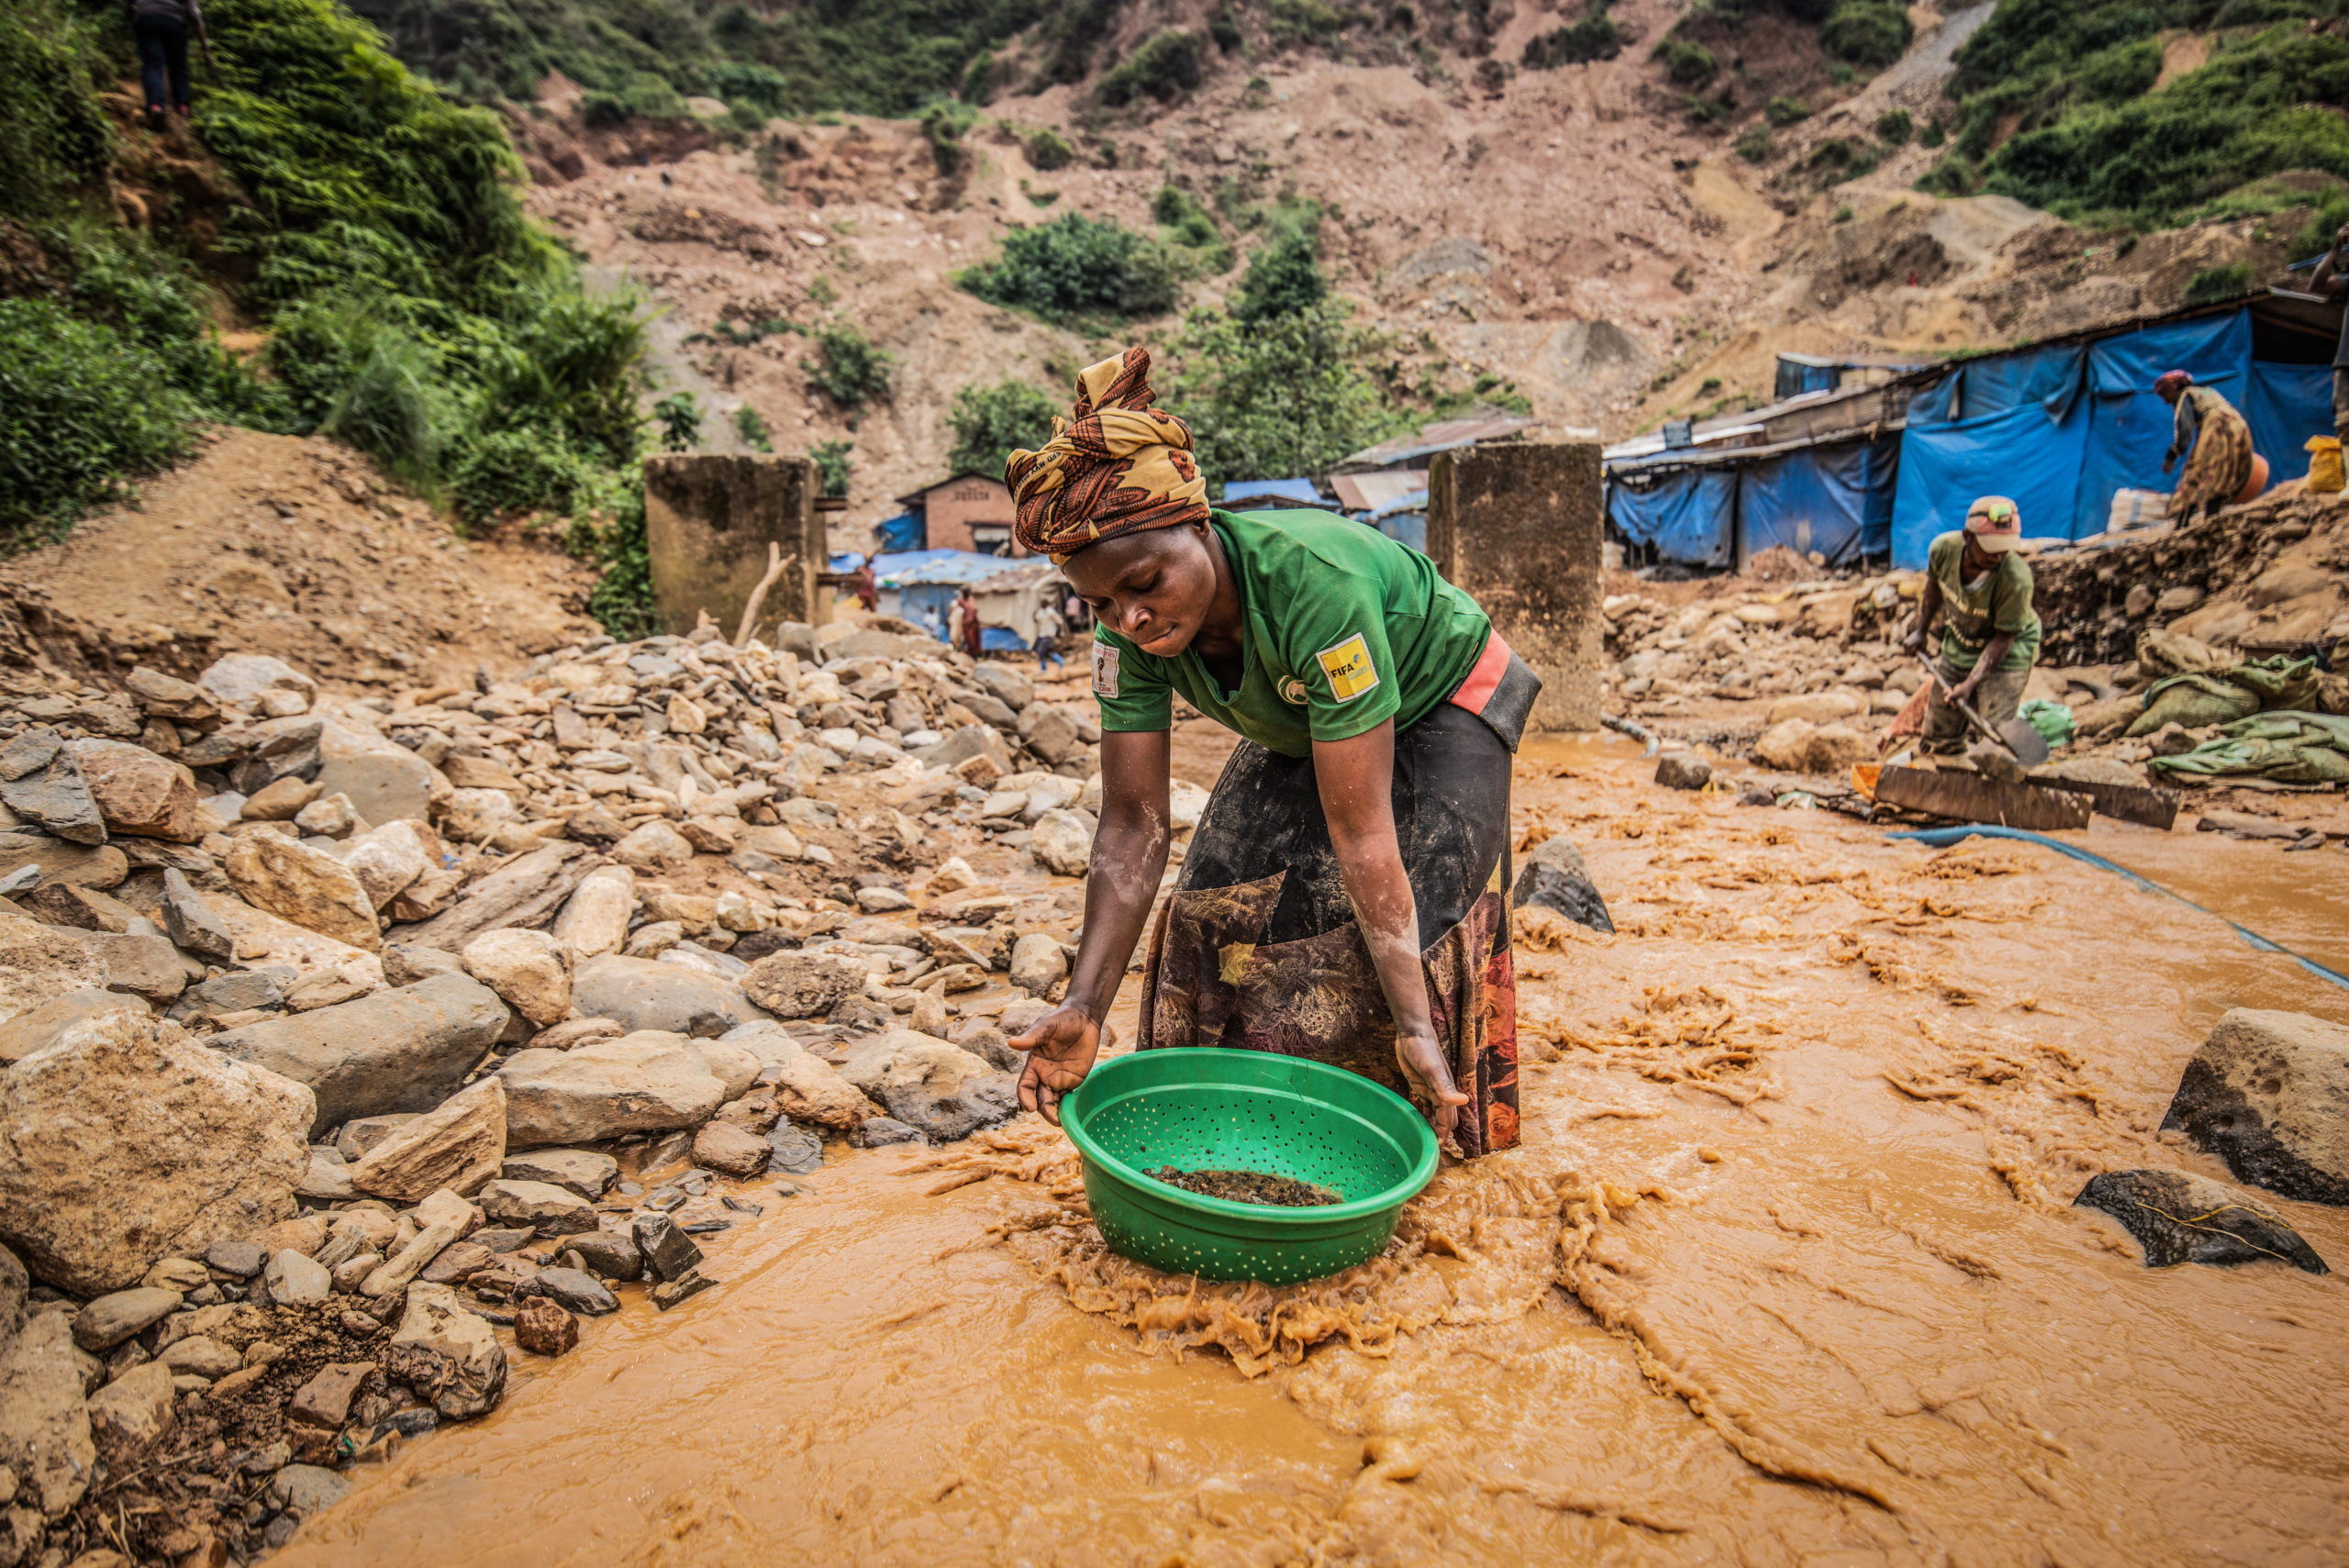 South Kivu Province, March 2021. A woman pans for gold at a mine called D3 in Kamituga. Moses Sawasawa for Fondation Carmignac